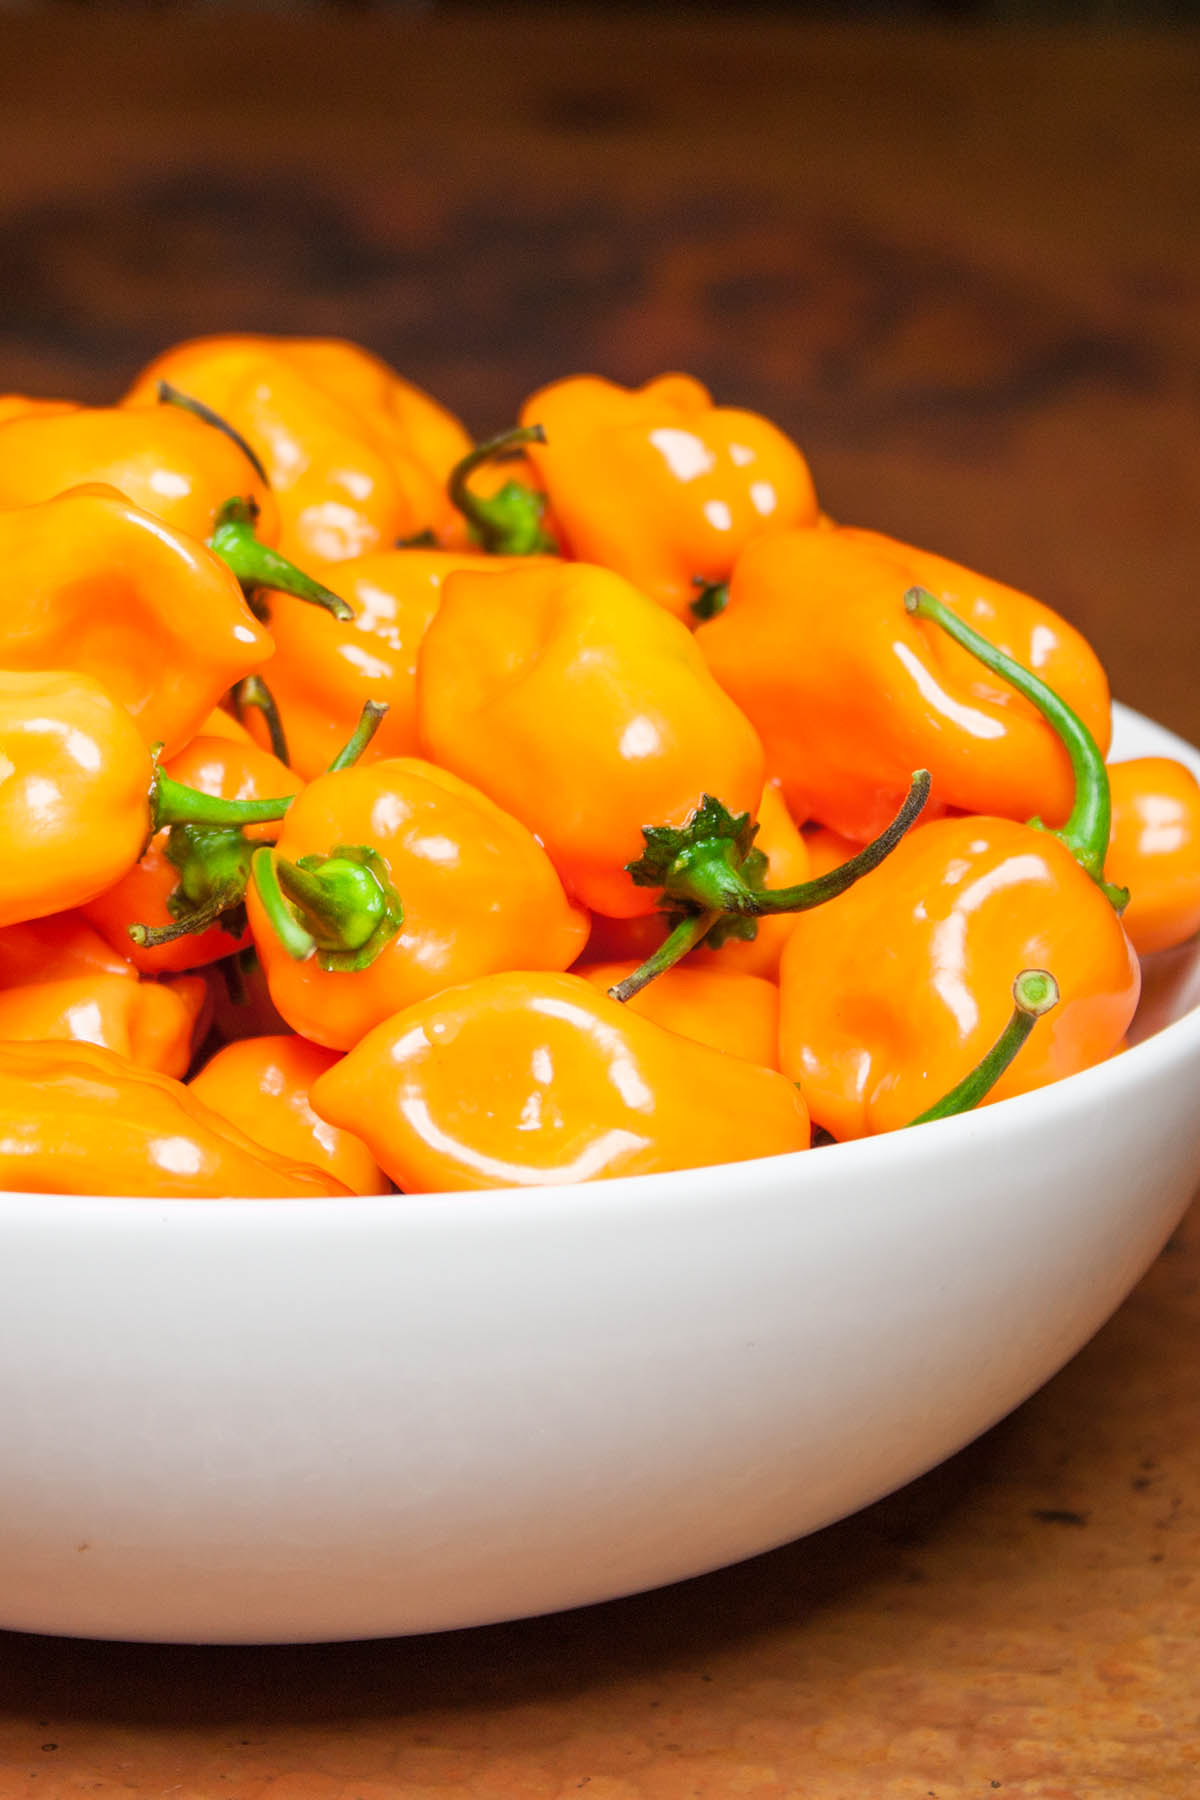 Habanero Pepper – Great Heat and Flavor